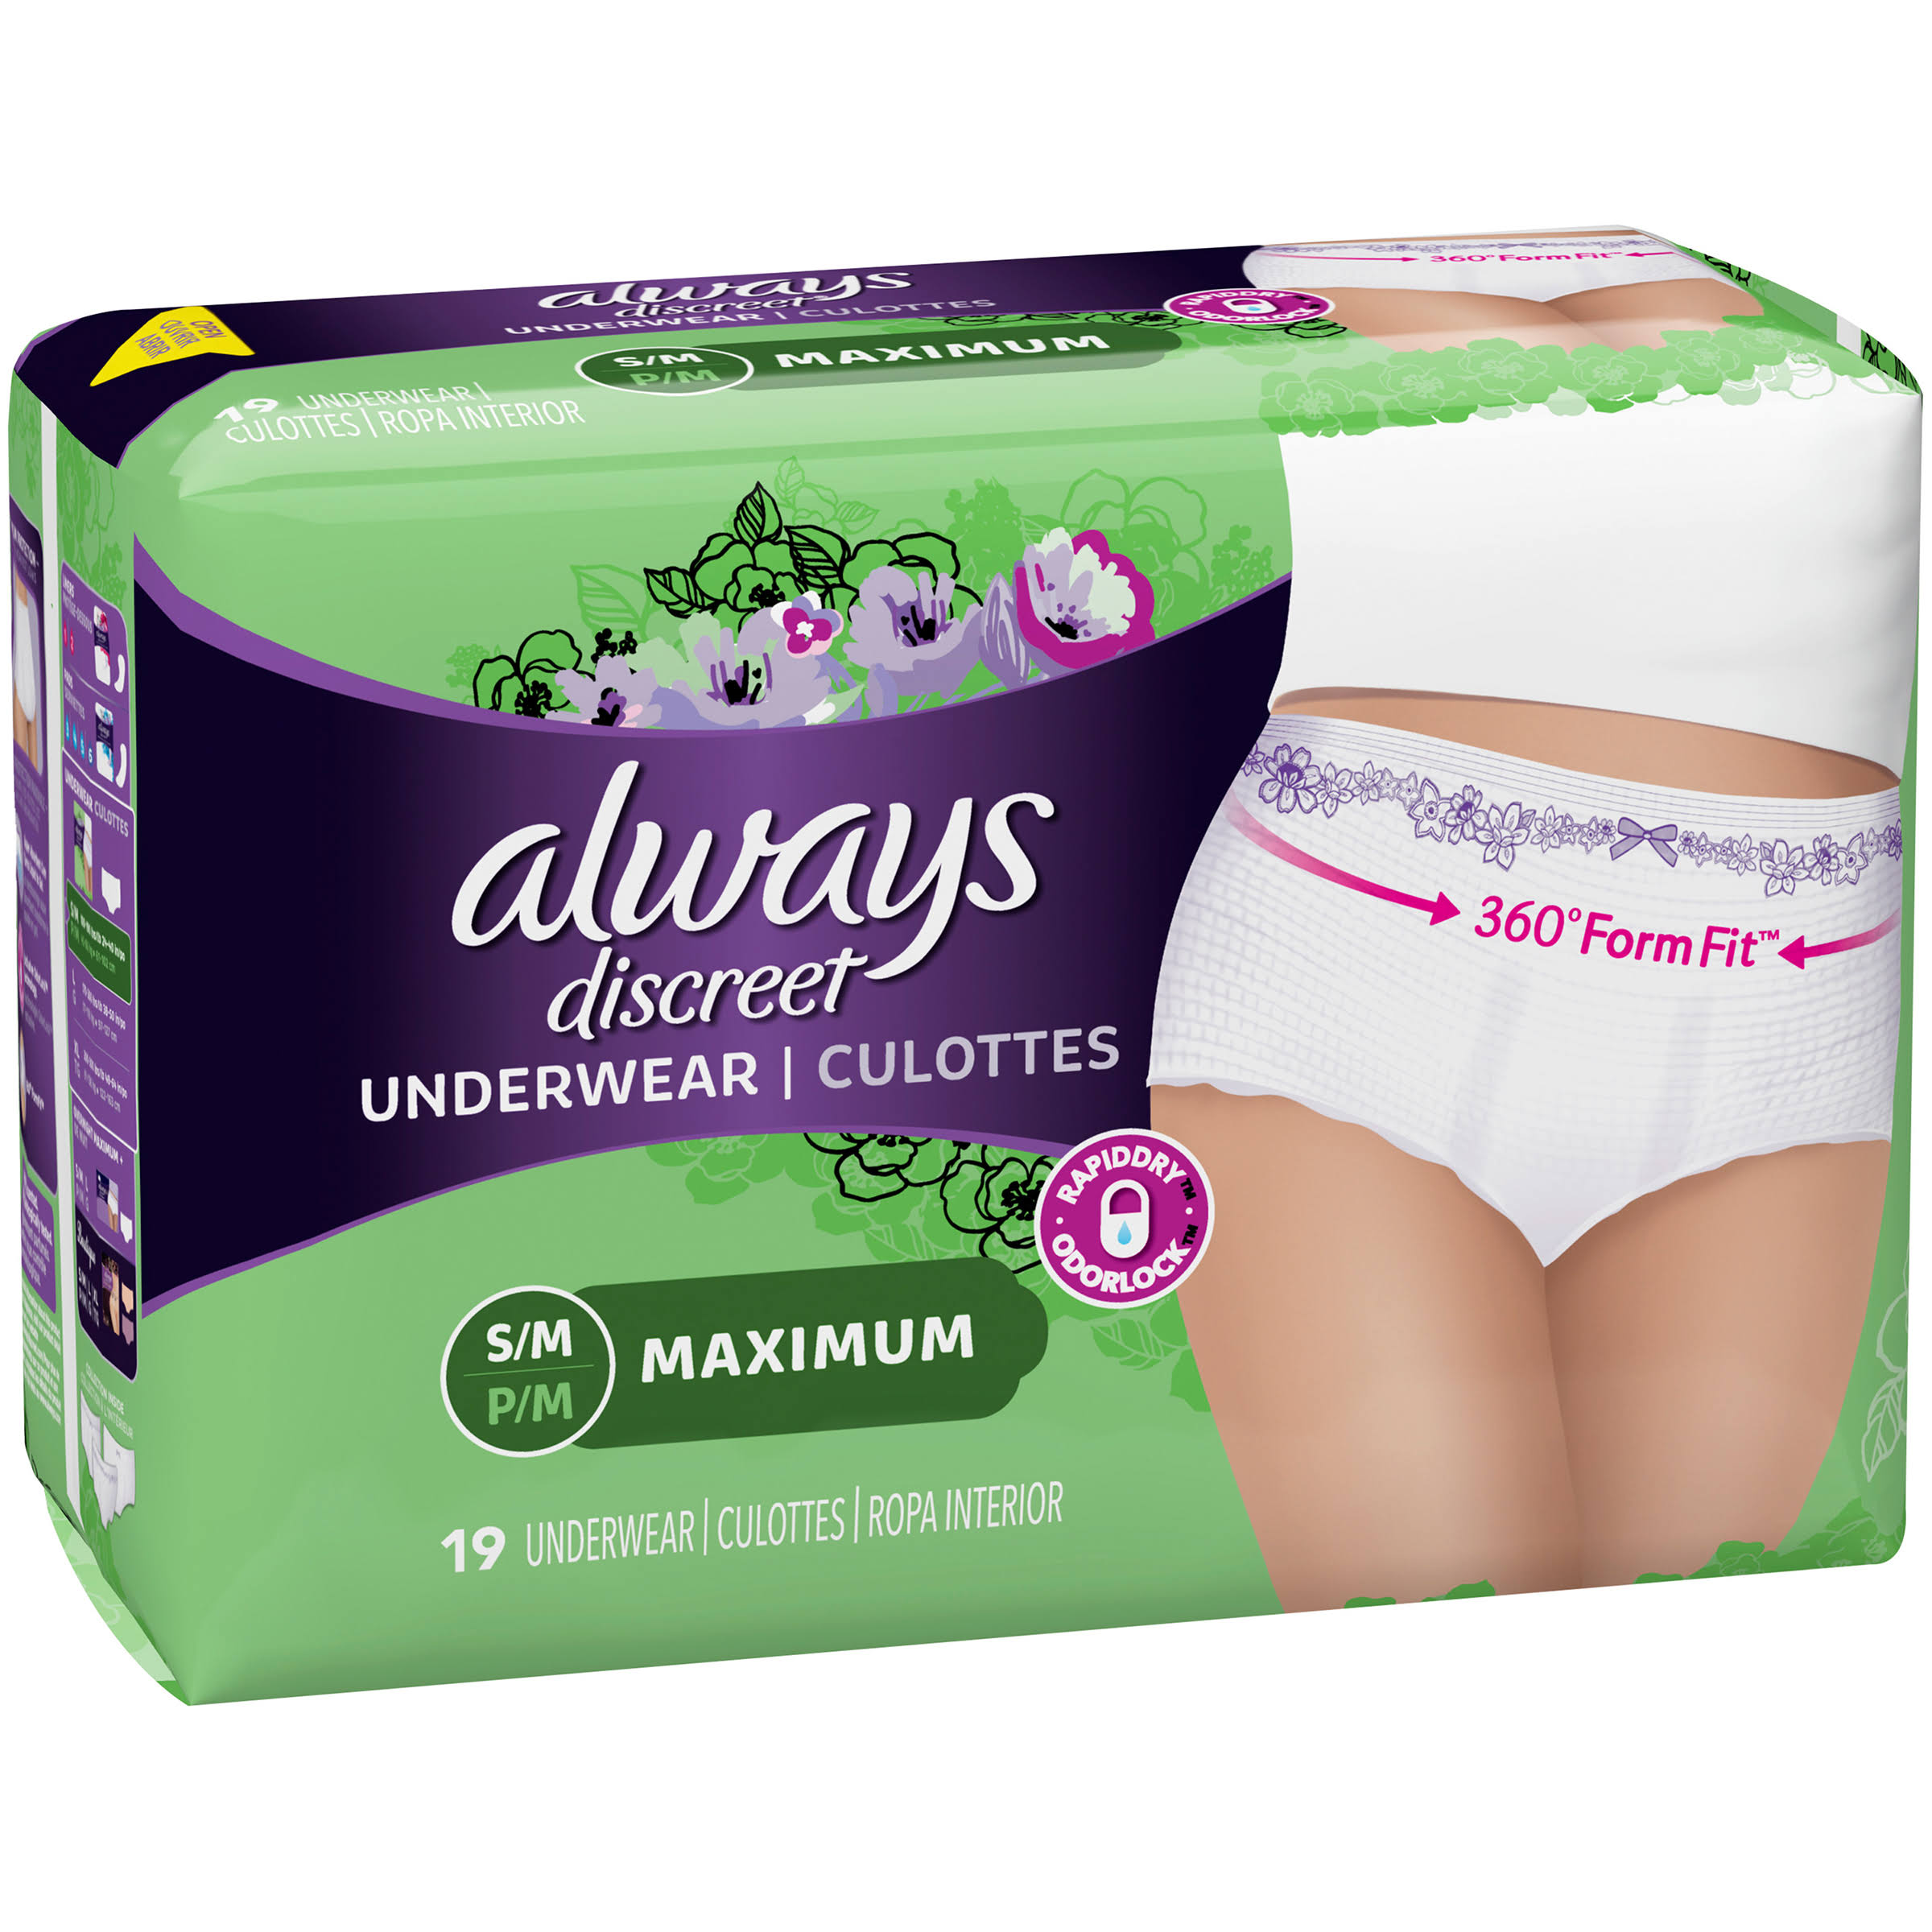 Always Discreet Underwear Maximum Classic Cut Underwear - Small-Medium, 19ct